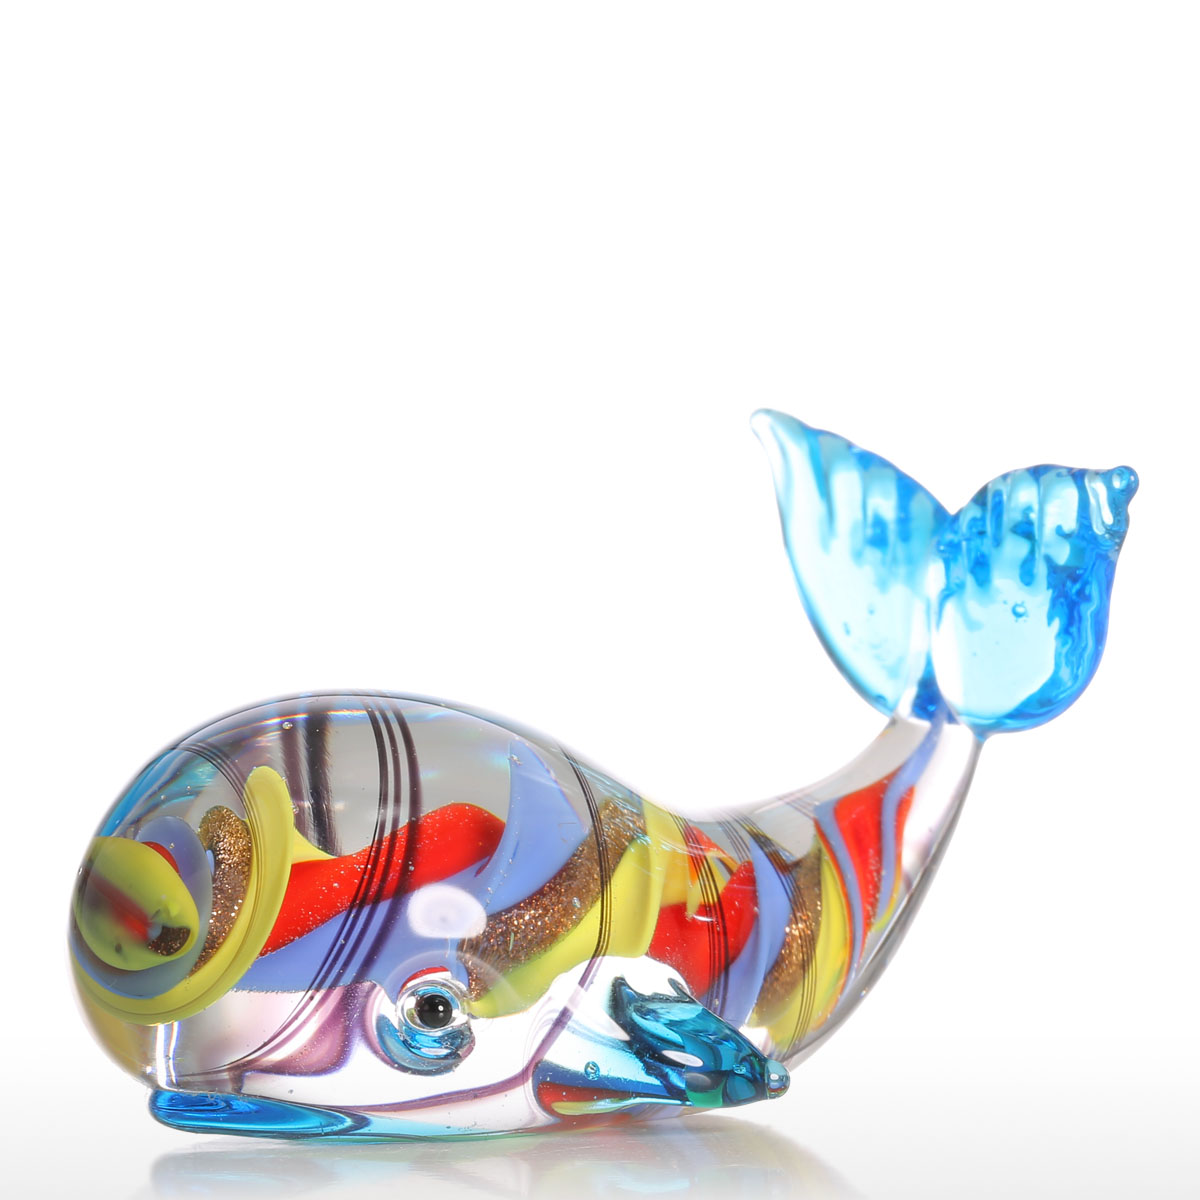 Glass animal ornaments - Tooarts Colorful Whale Gift Glass Stand Ornament Animal Figurine Handblown Home Decor Multicolor For Office Decoration